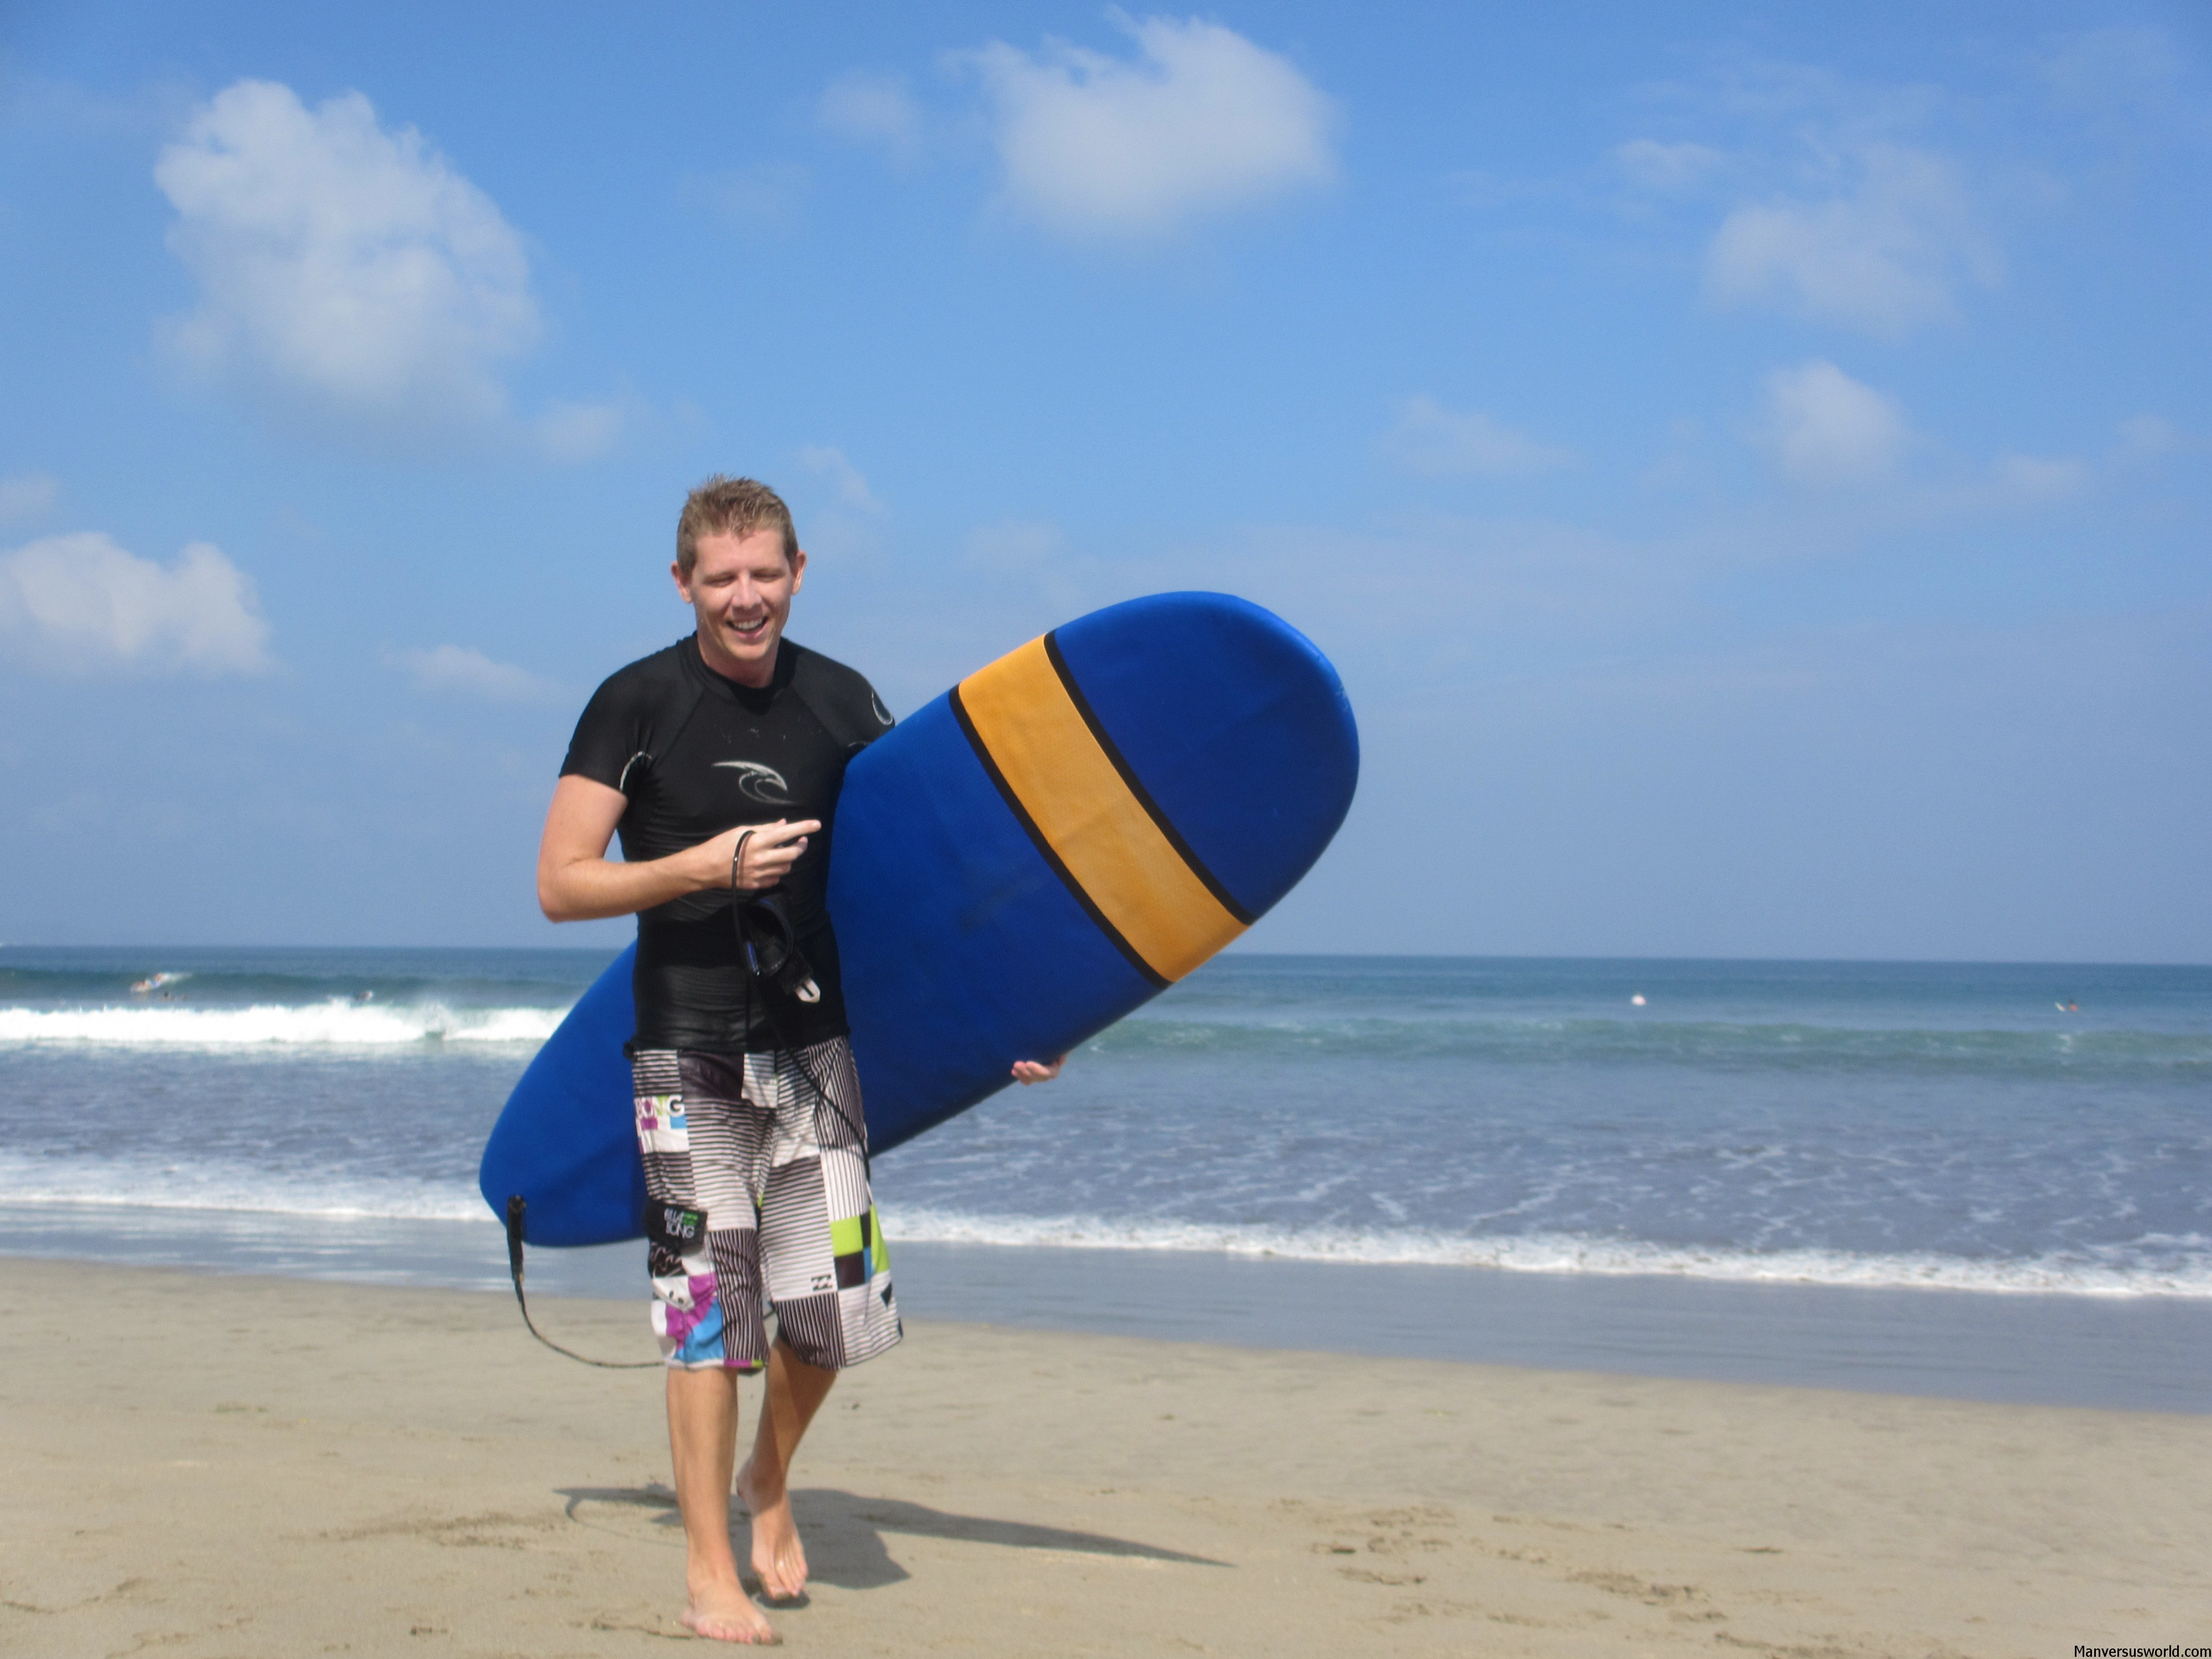 Pleased as punch: learning to surf on Kuta Beach, Bali